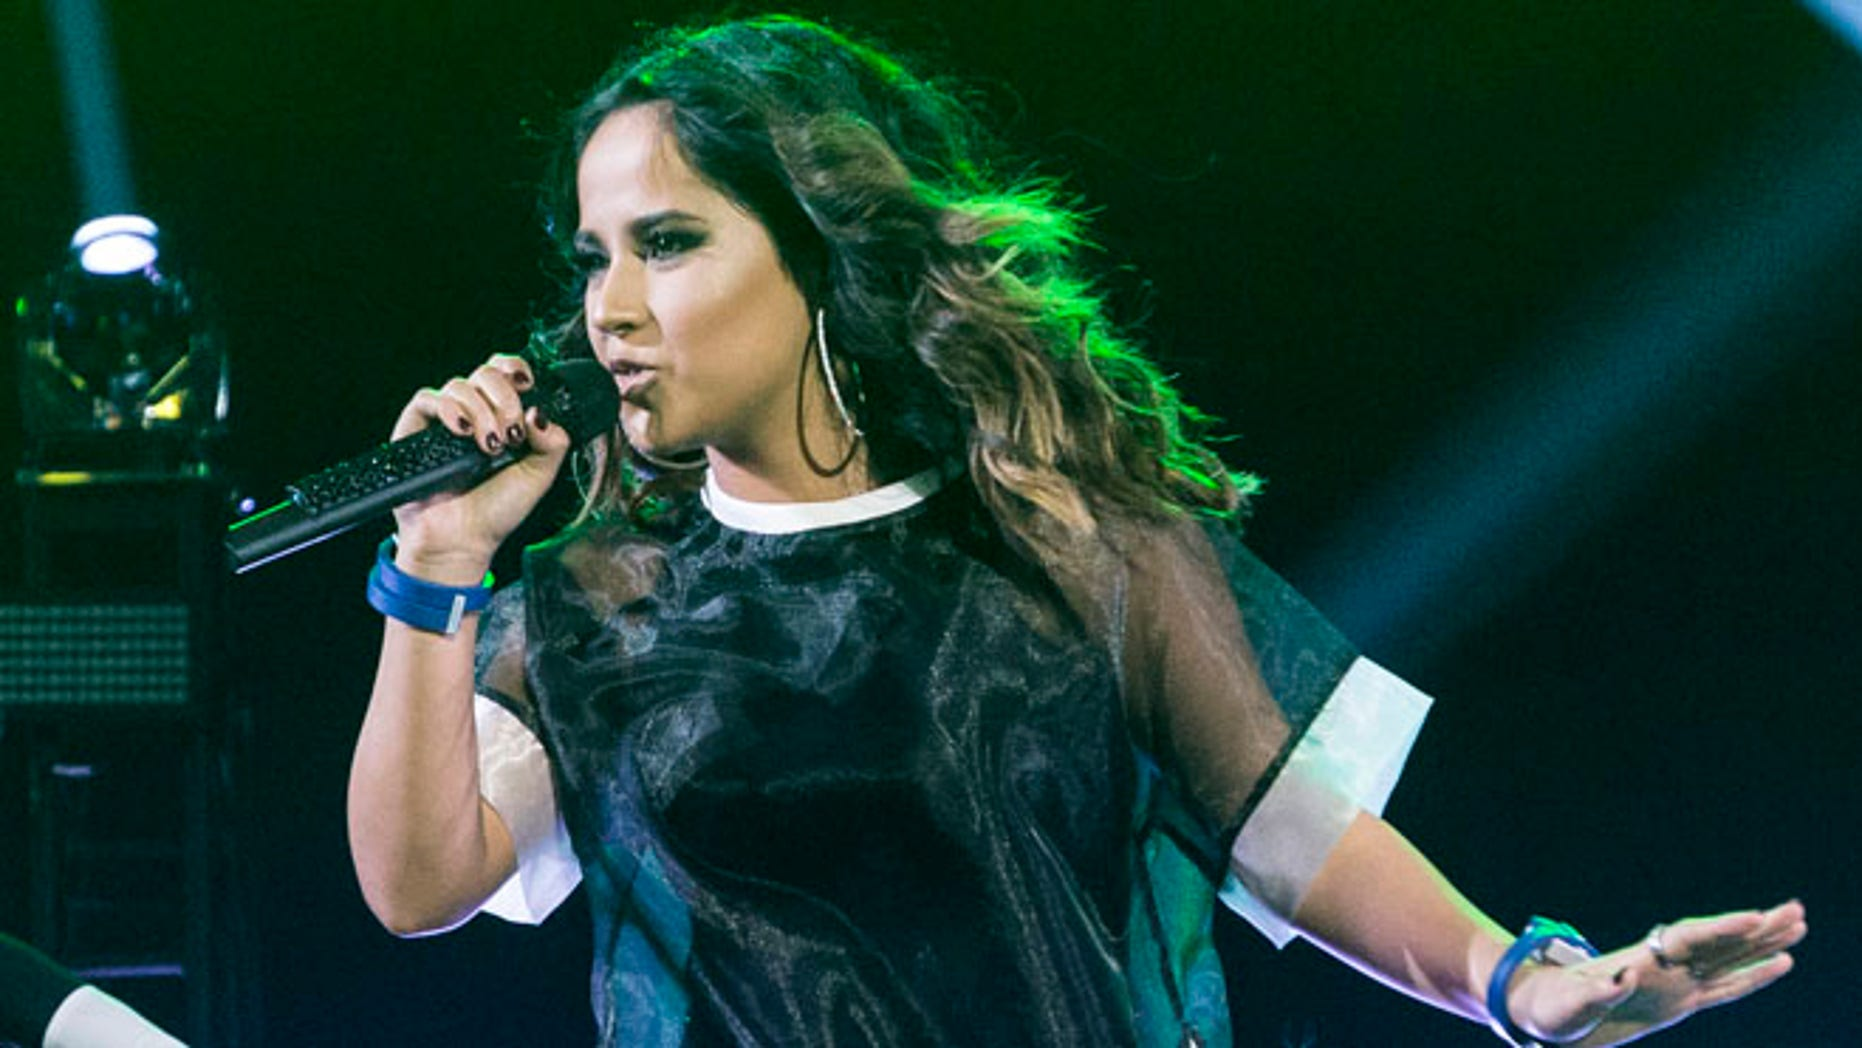 BURBANK, CA - APRIL 18:  Becky G performs on stage at iHeartRadio LIVE Move with the music powered by Degree with Becky G at iHeartRadio Theater on April 18, 2016 in Burbank, California.  (Photo by Rich Polk/Getty Images for iHeartMedia)